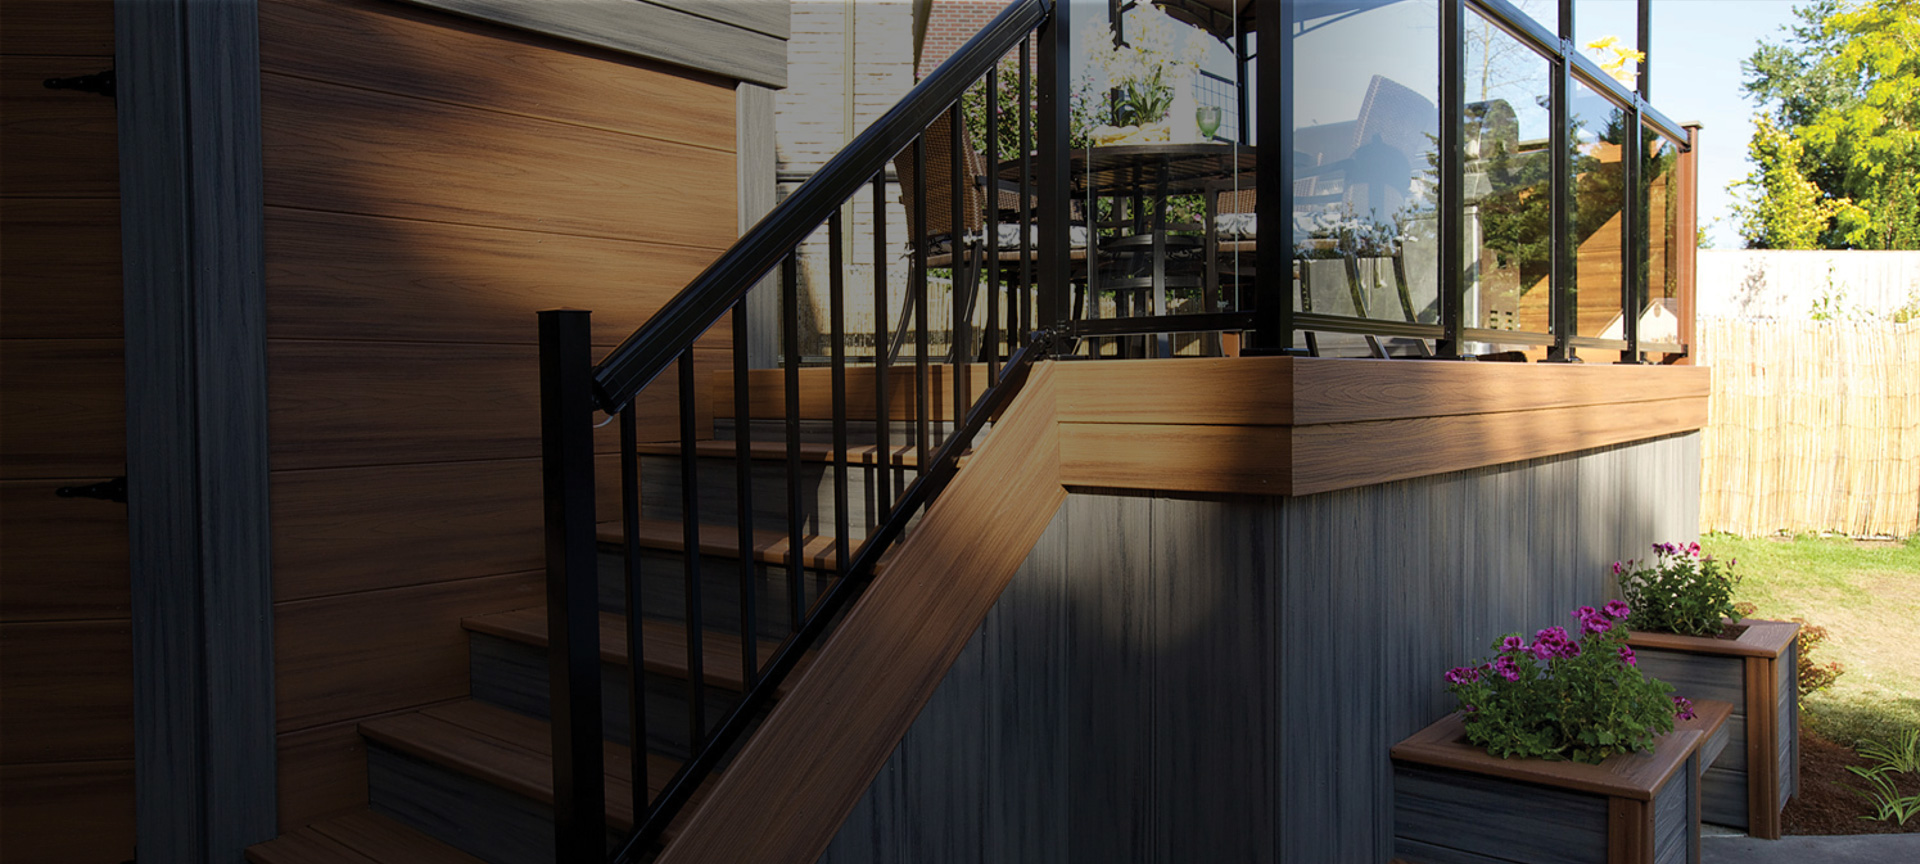 Regal Idee Regal Ideas - The Leader In Aluminum Railing Systems